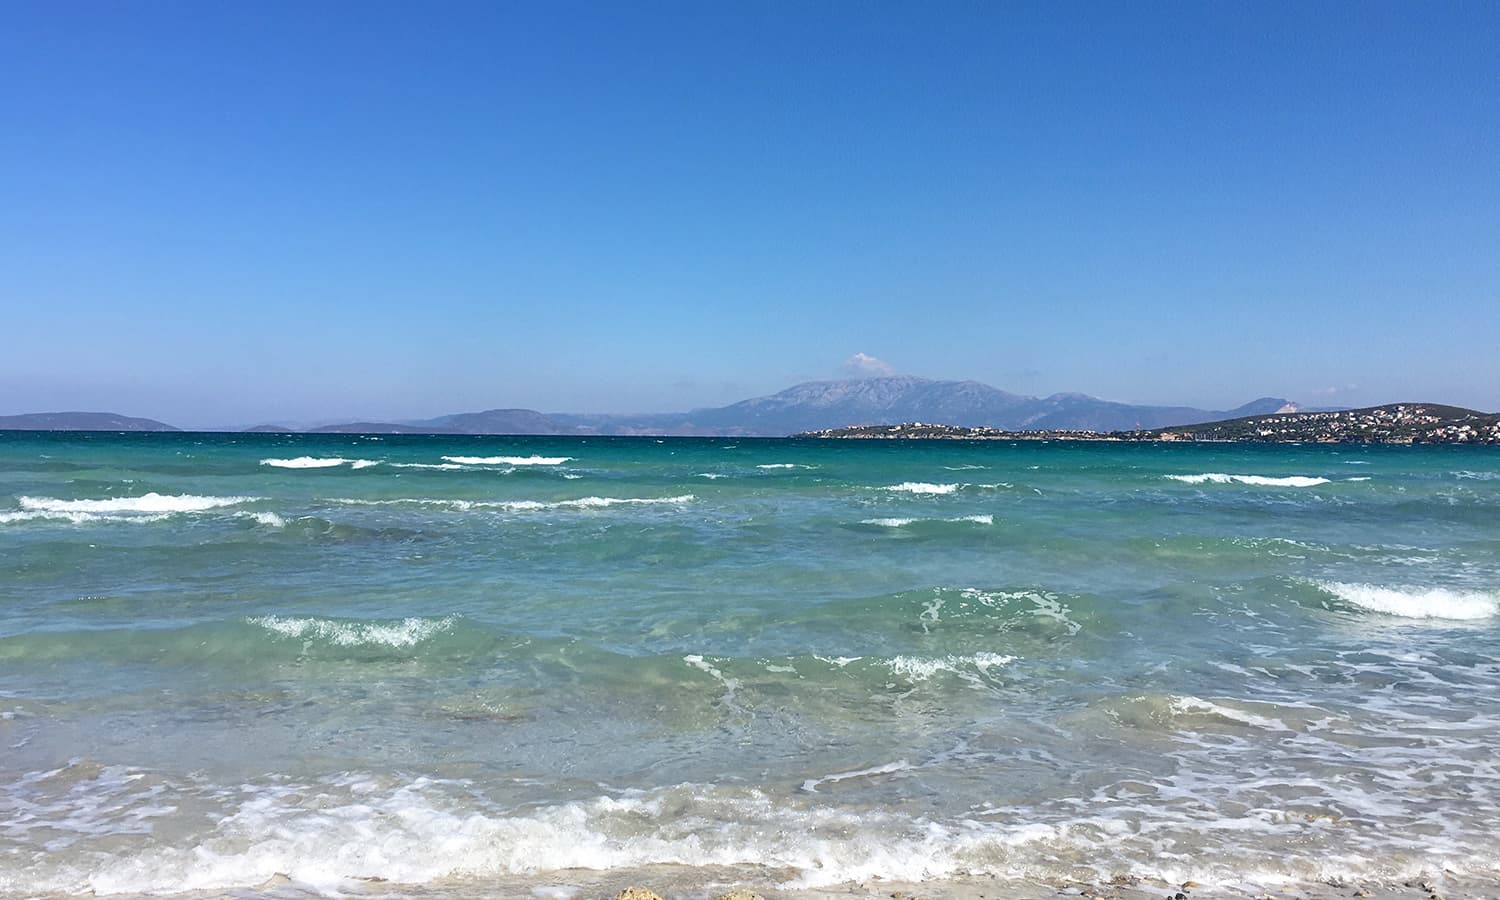 The pristine ılıca beach is a 15-minute drive from the town centre.